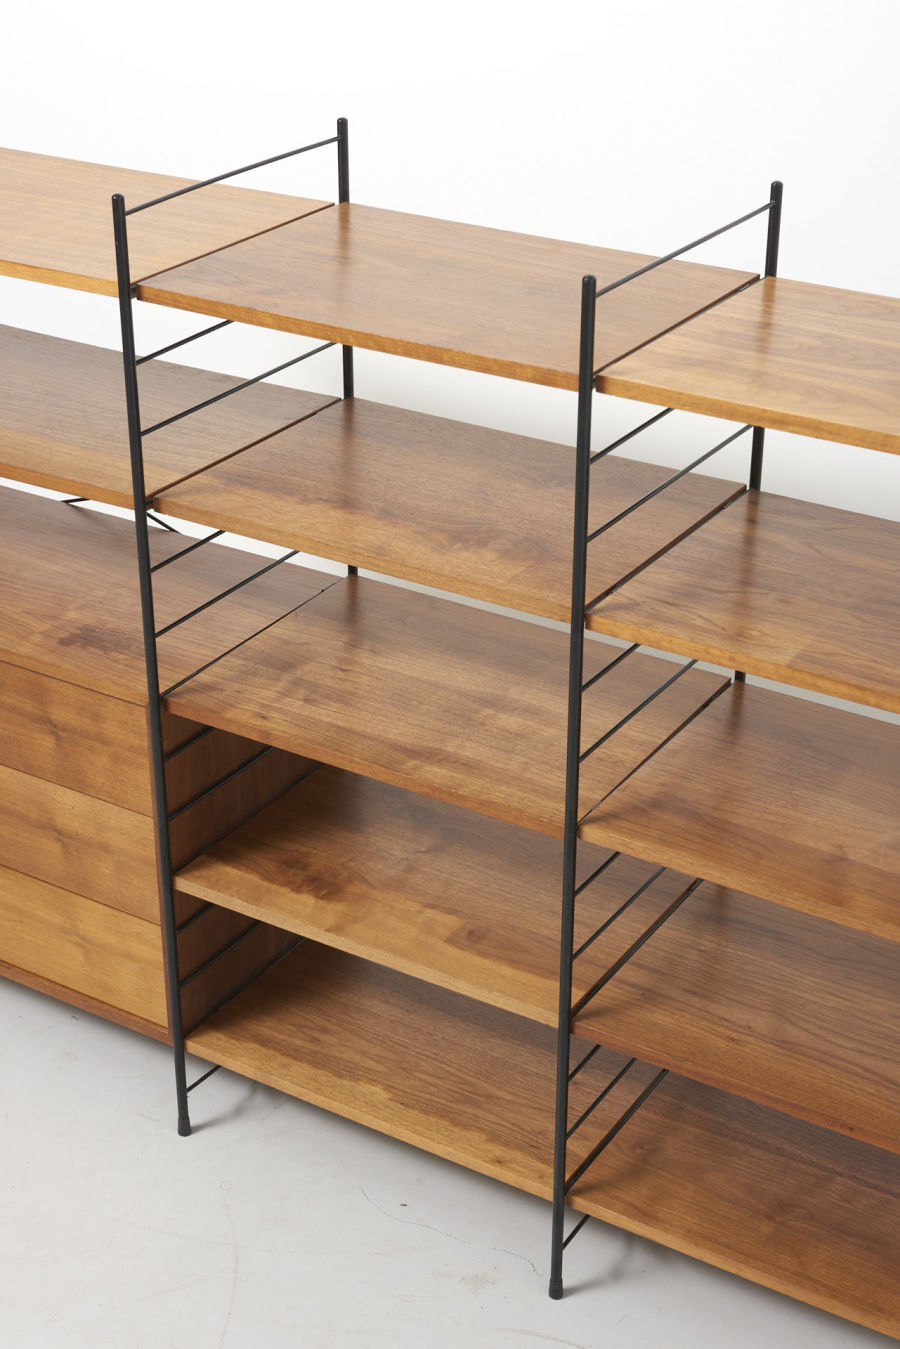 modestfurniture-vintage-2590-whb-shelving-unit-set-607